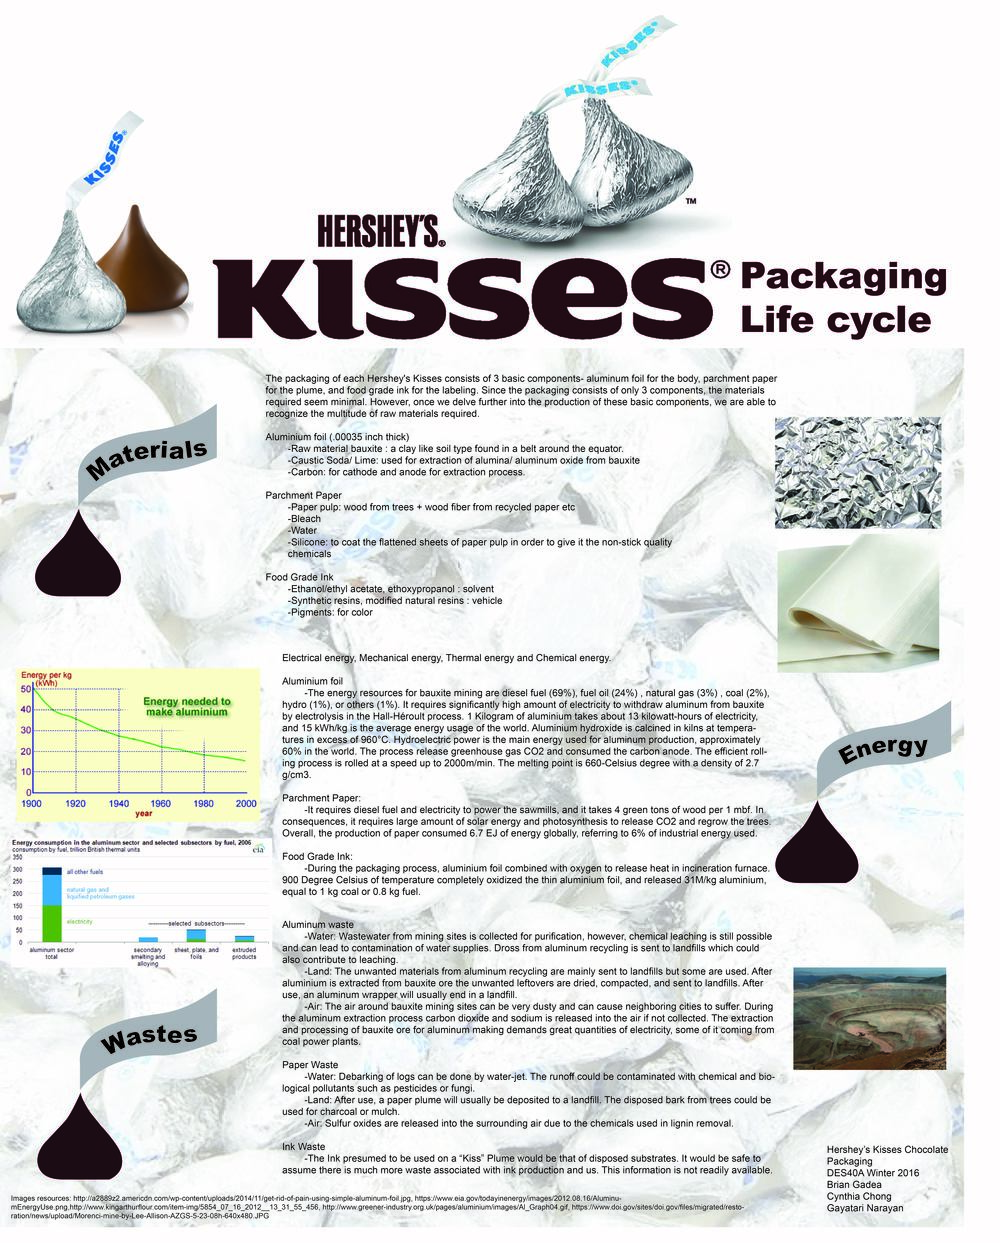 HERSHEY'S KISSES Chocolate Packaging Life Cycle